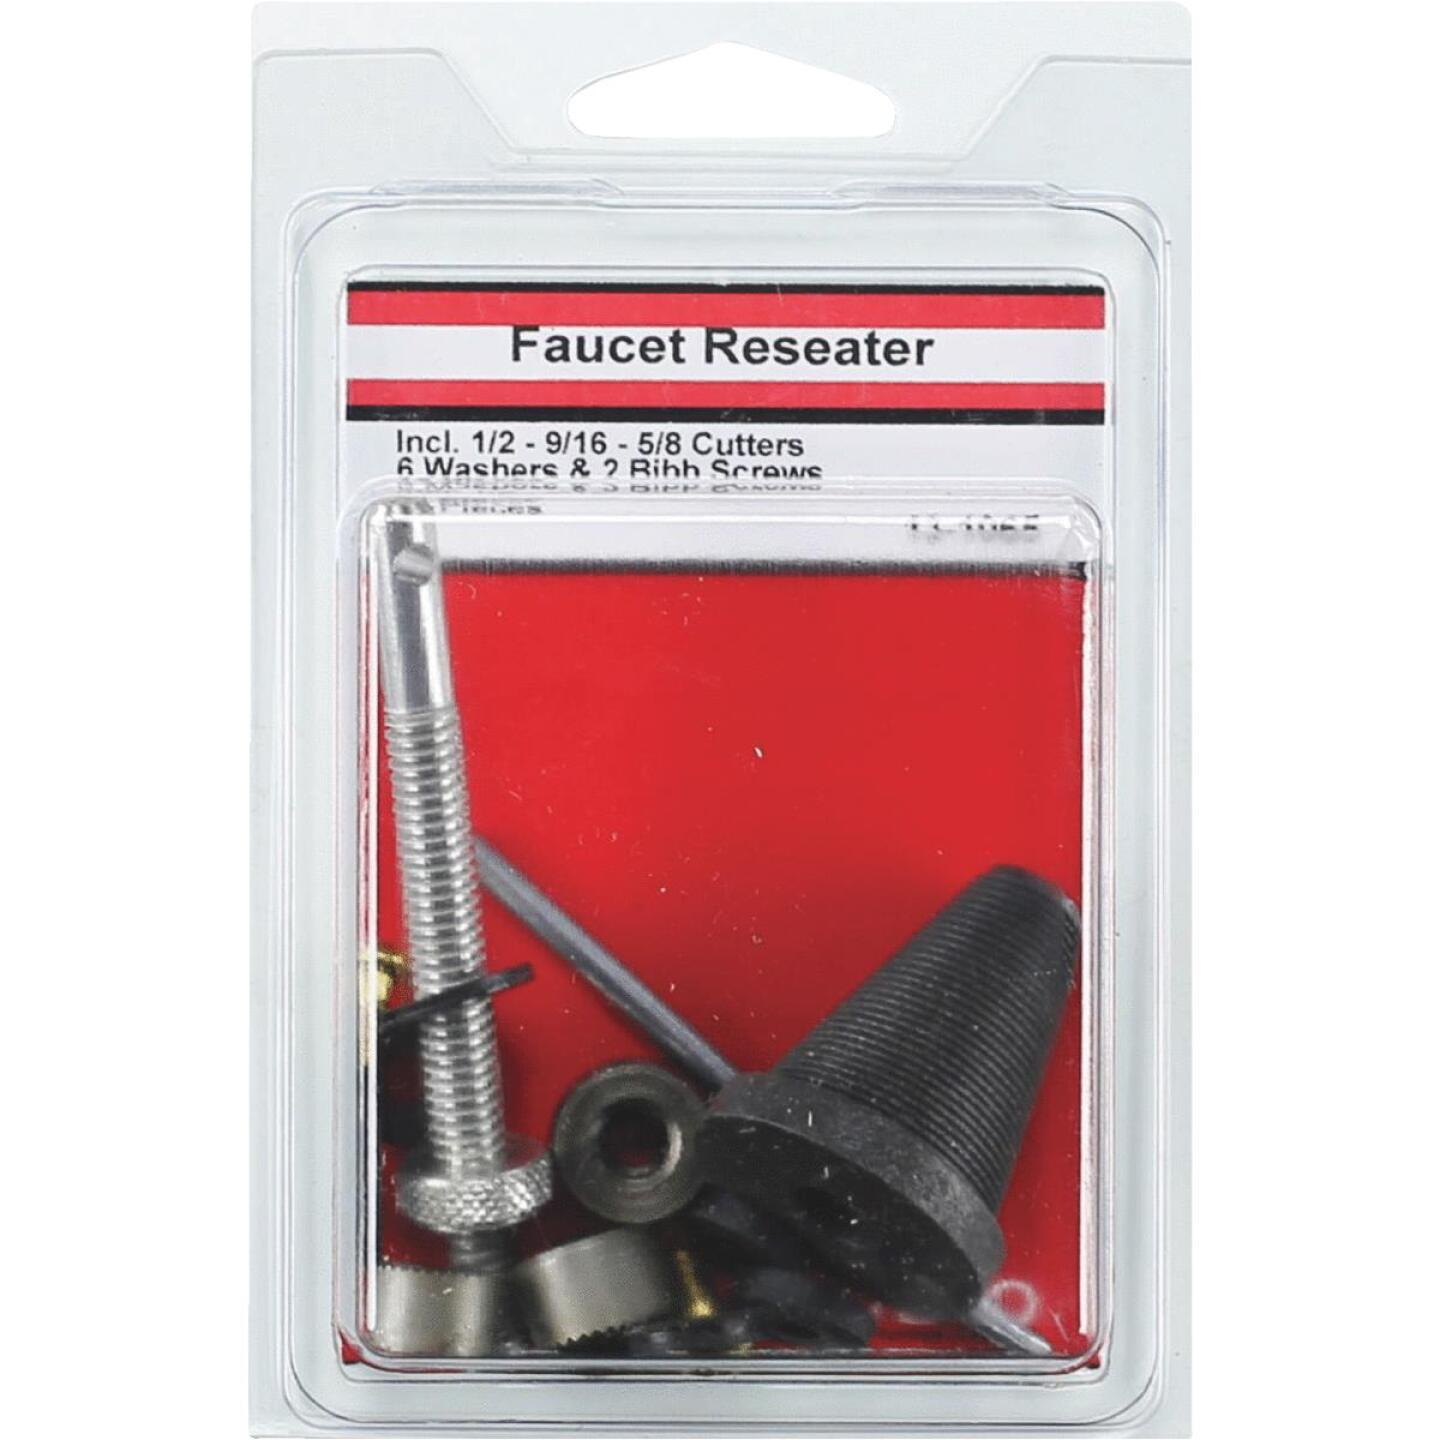 Lasco 1/4 In. to 1/2 In. Faucet Reamer Image 2